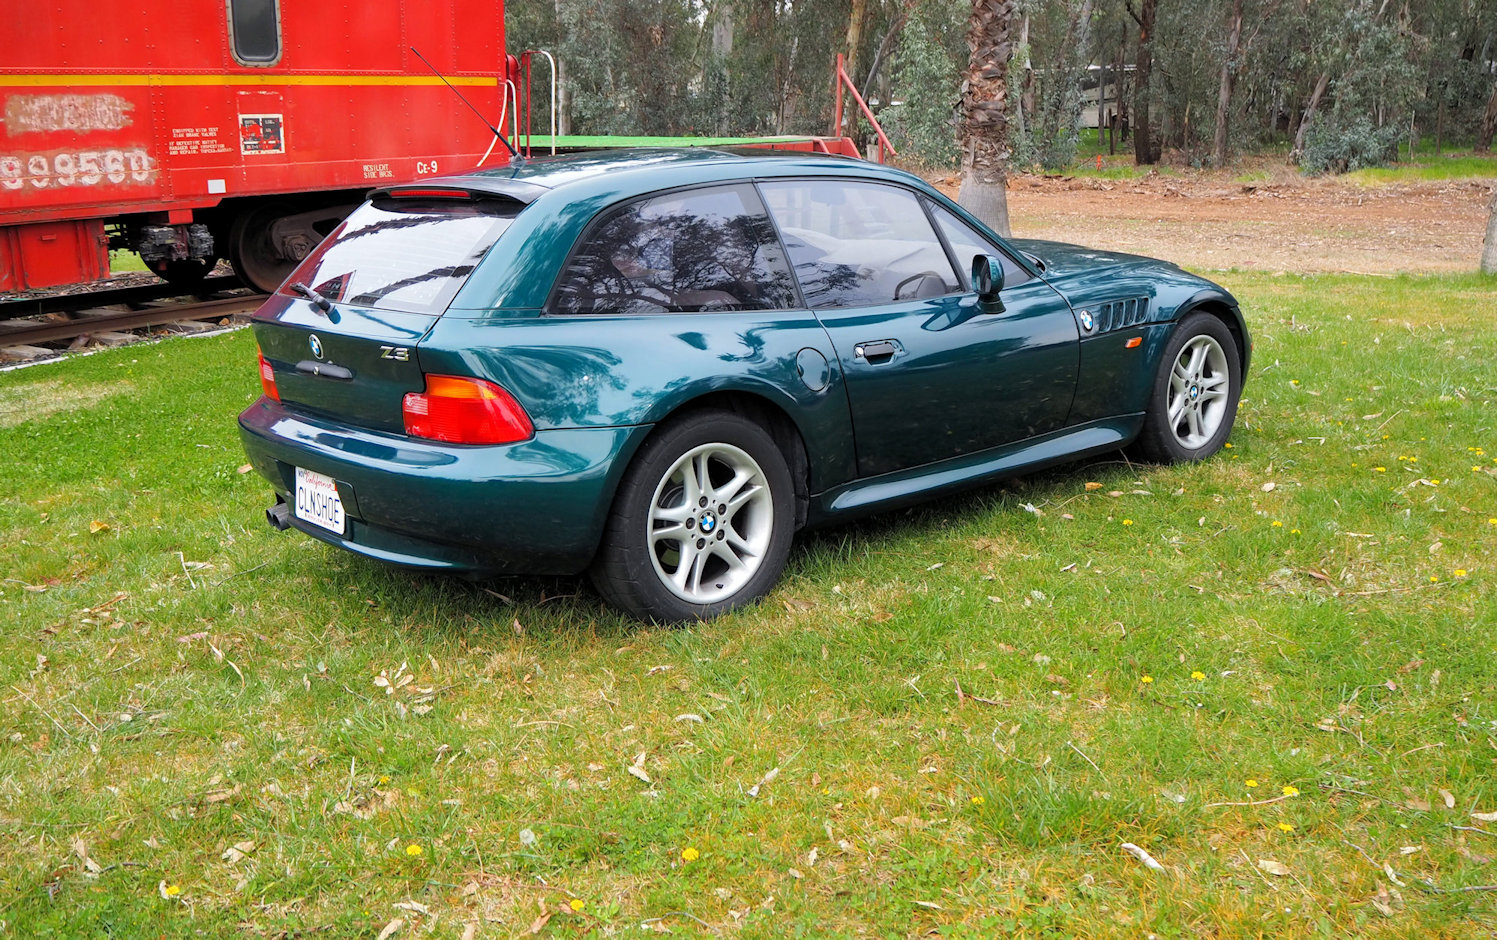 1999 BMW Z3 Coupe in Boston Green Metallic over E36 Sand Beige